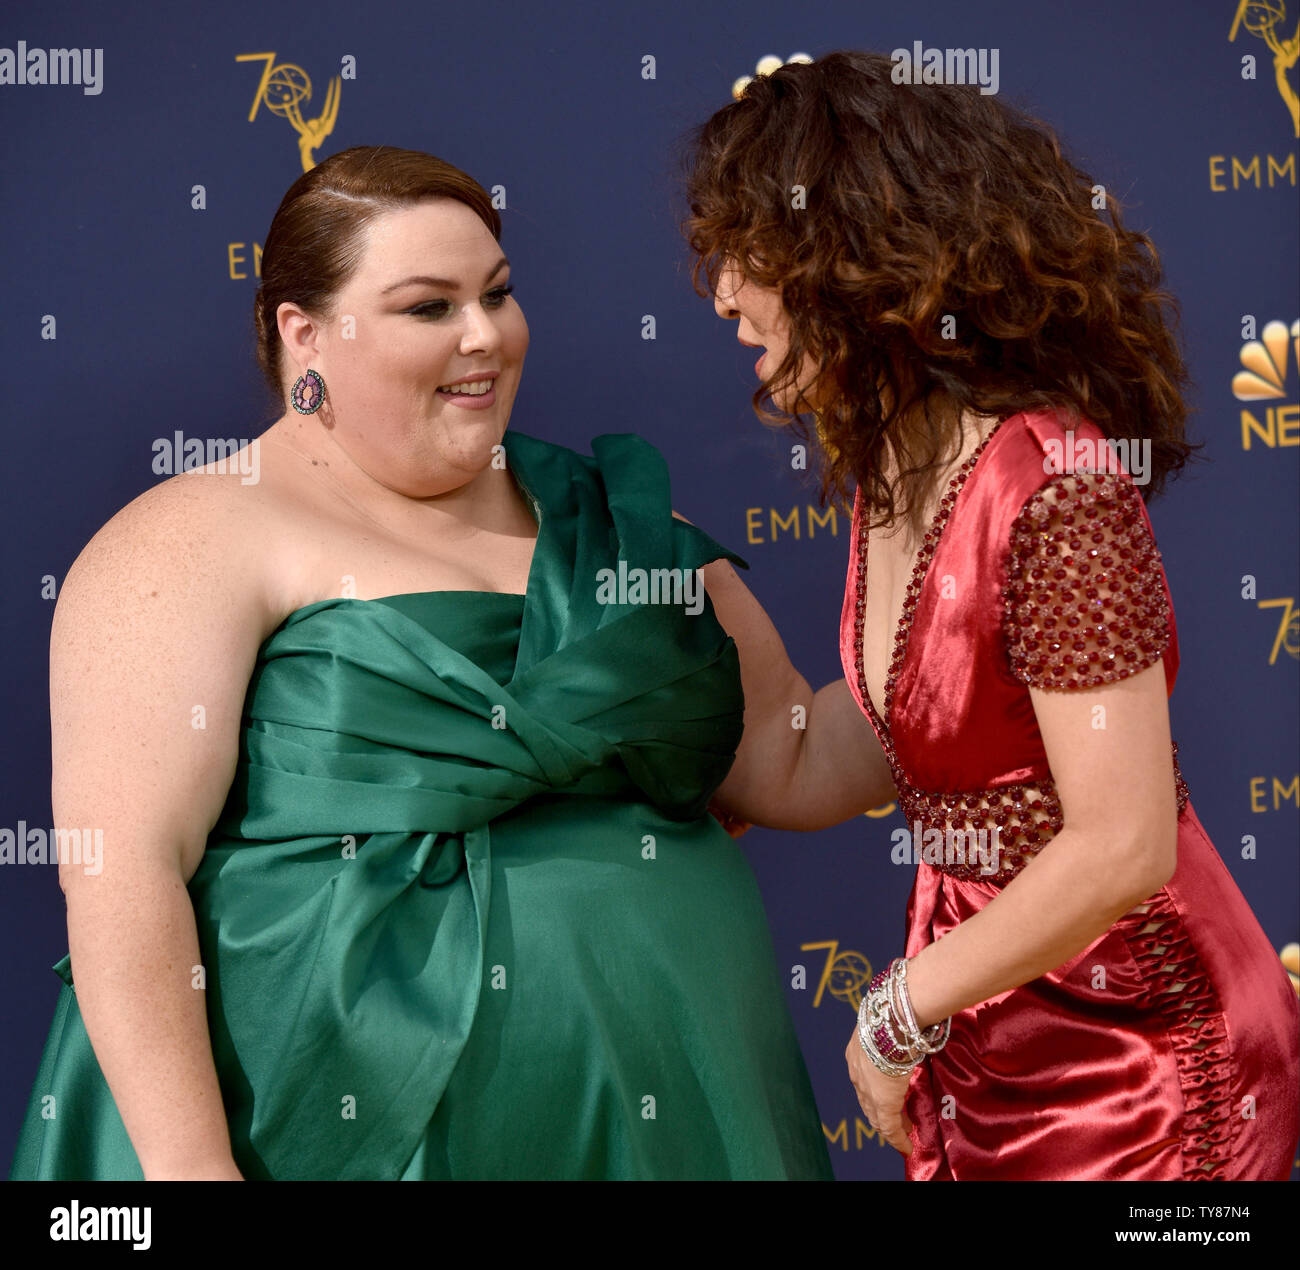 Actors Chrissy Metz (L) and Sandra Oh attend the 70th annual Primetime Emmy Award at the Microsoft Theater in downtown Los Angeles on September 17, 2018.   Photo by Christine Chew/UPI Stock Photo